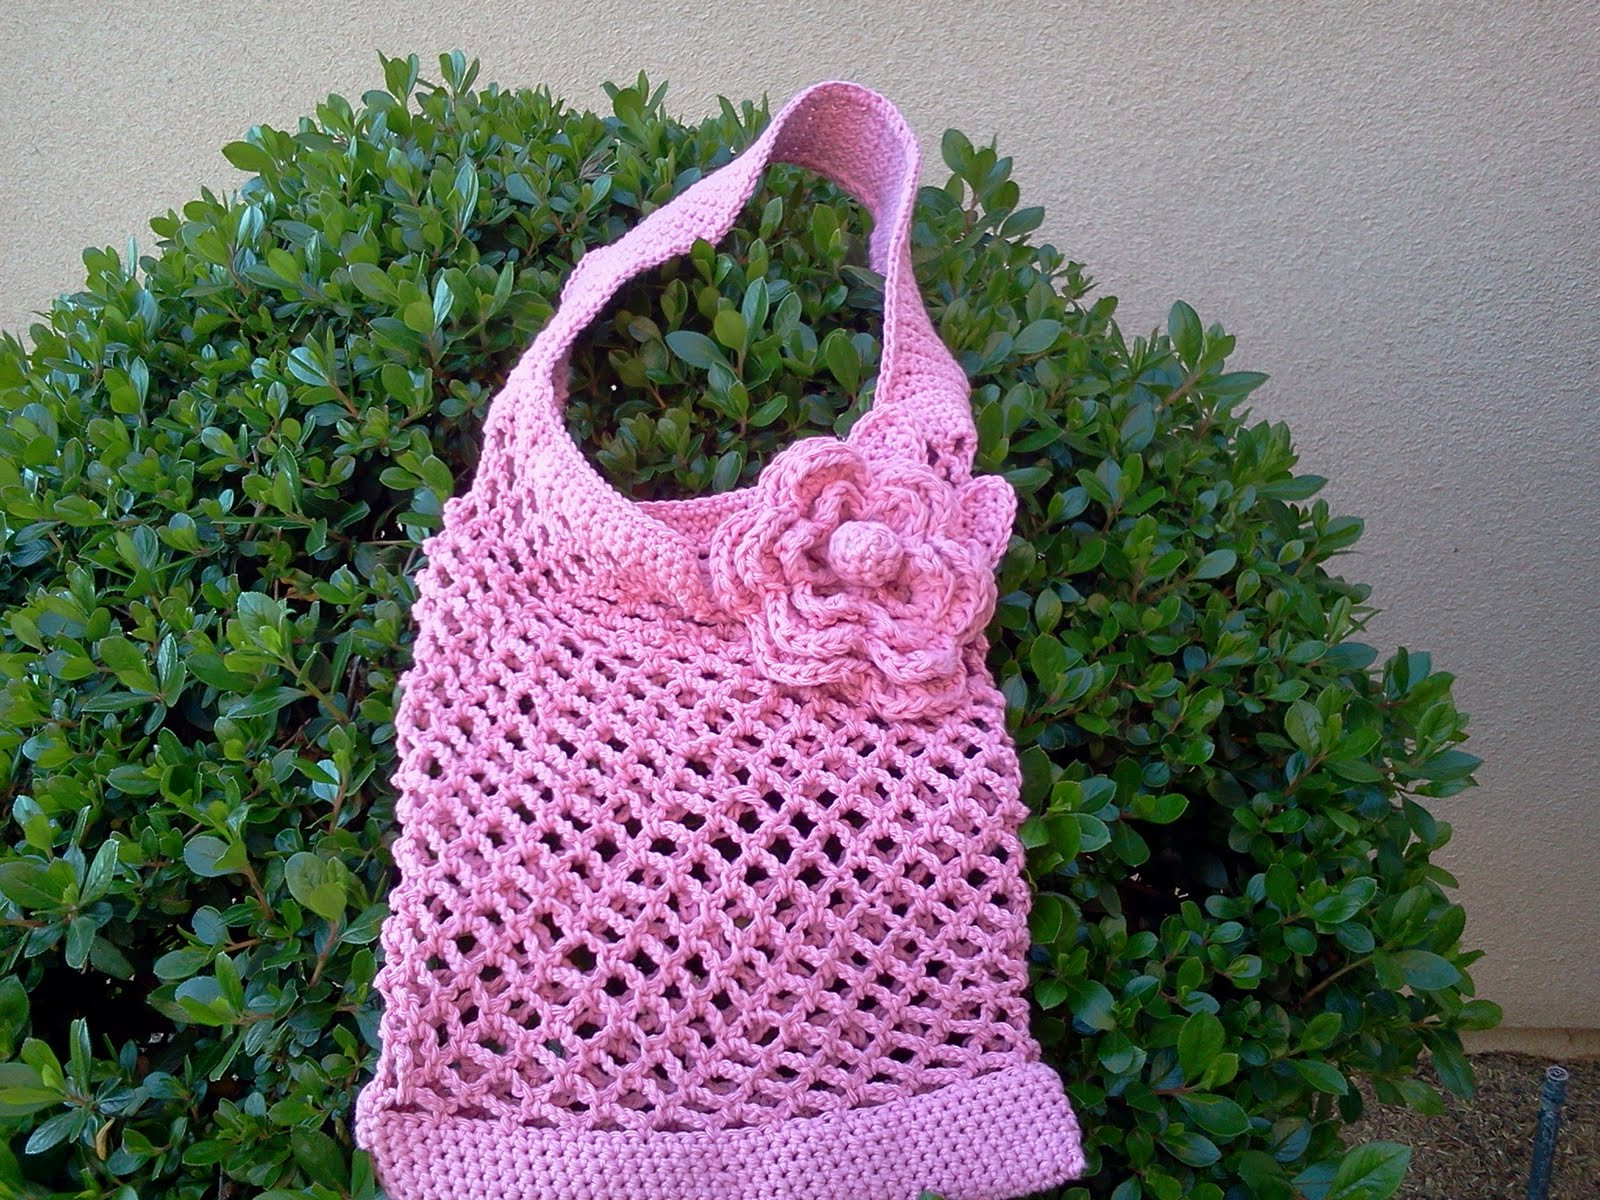 Crochet Grocery Bags Unique Mesh Shopping Bag Crochet Pattern – Easy Crochet Patterns Of New 45 Pictures Crochet Grocery Bags